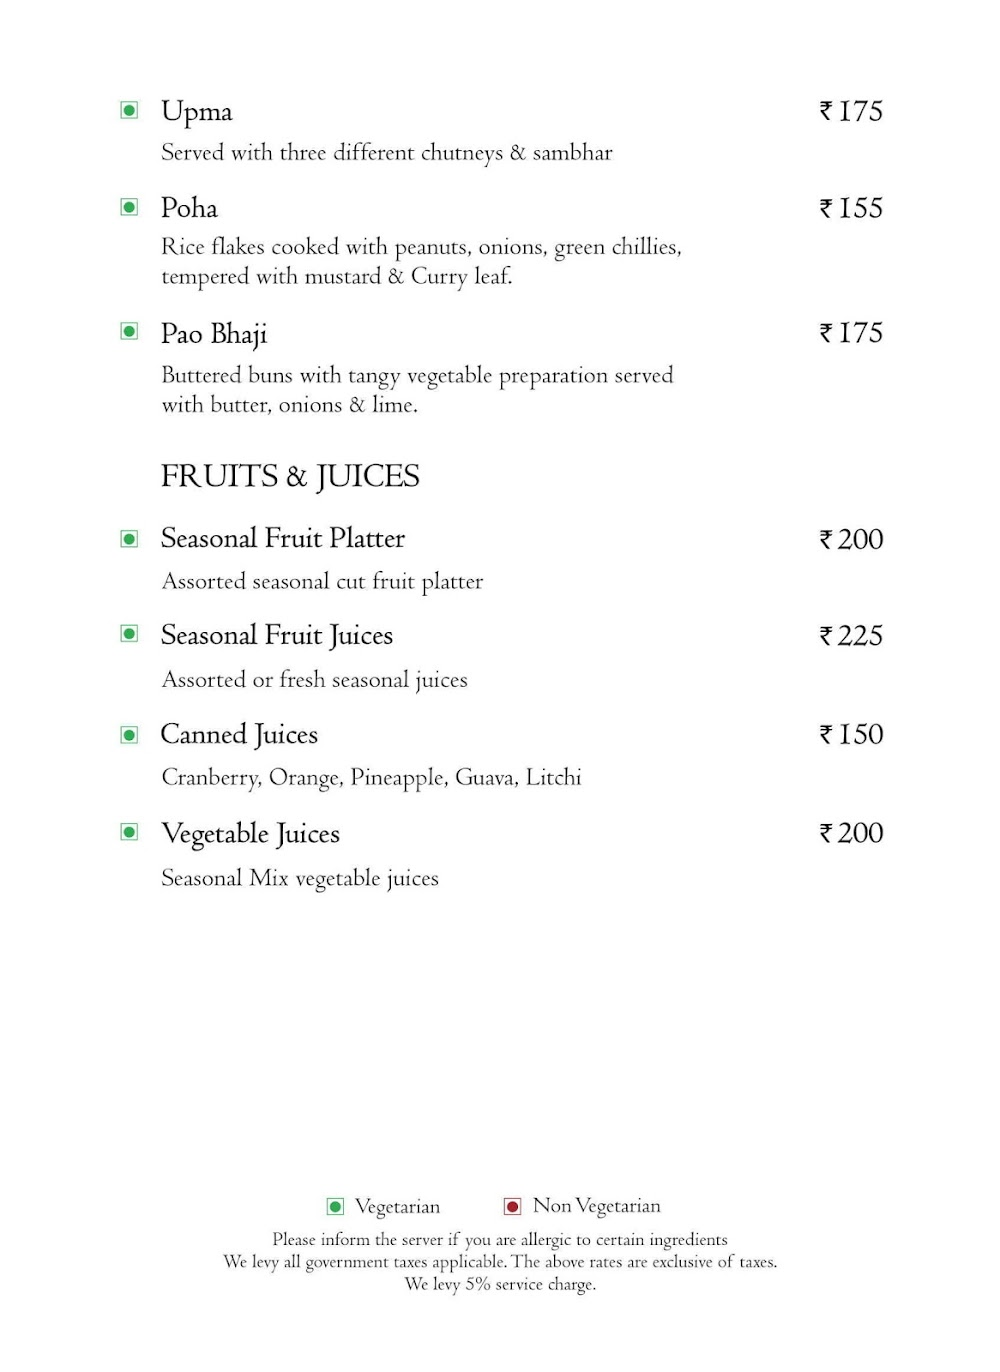 Branche - Golden Tulip Suites menu 11